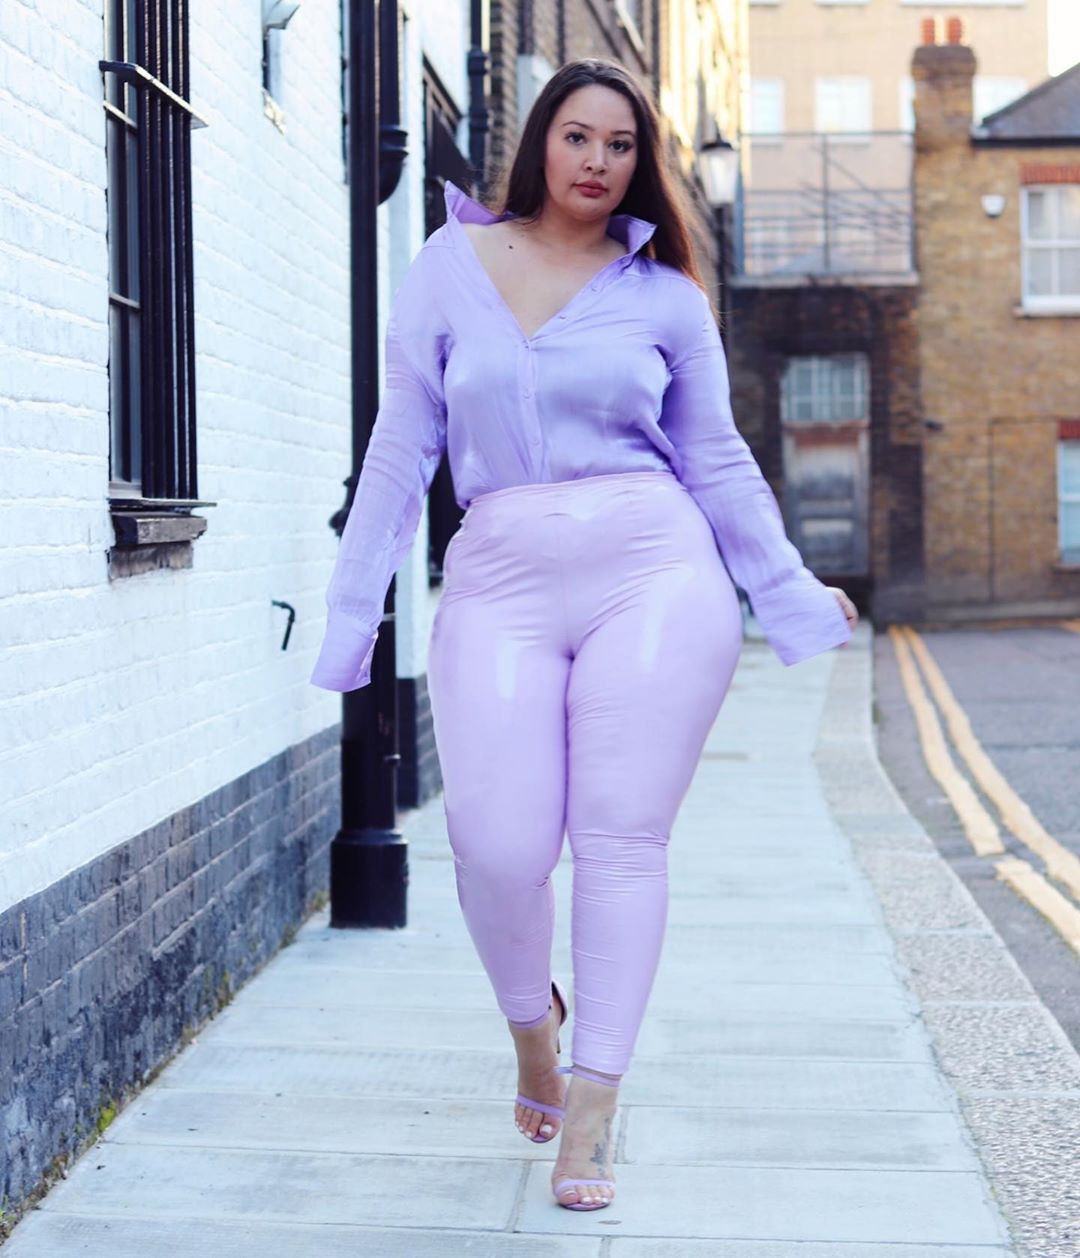 Plus Size legs pic, clothing ideas, lavender